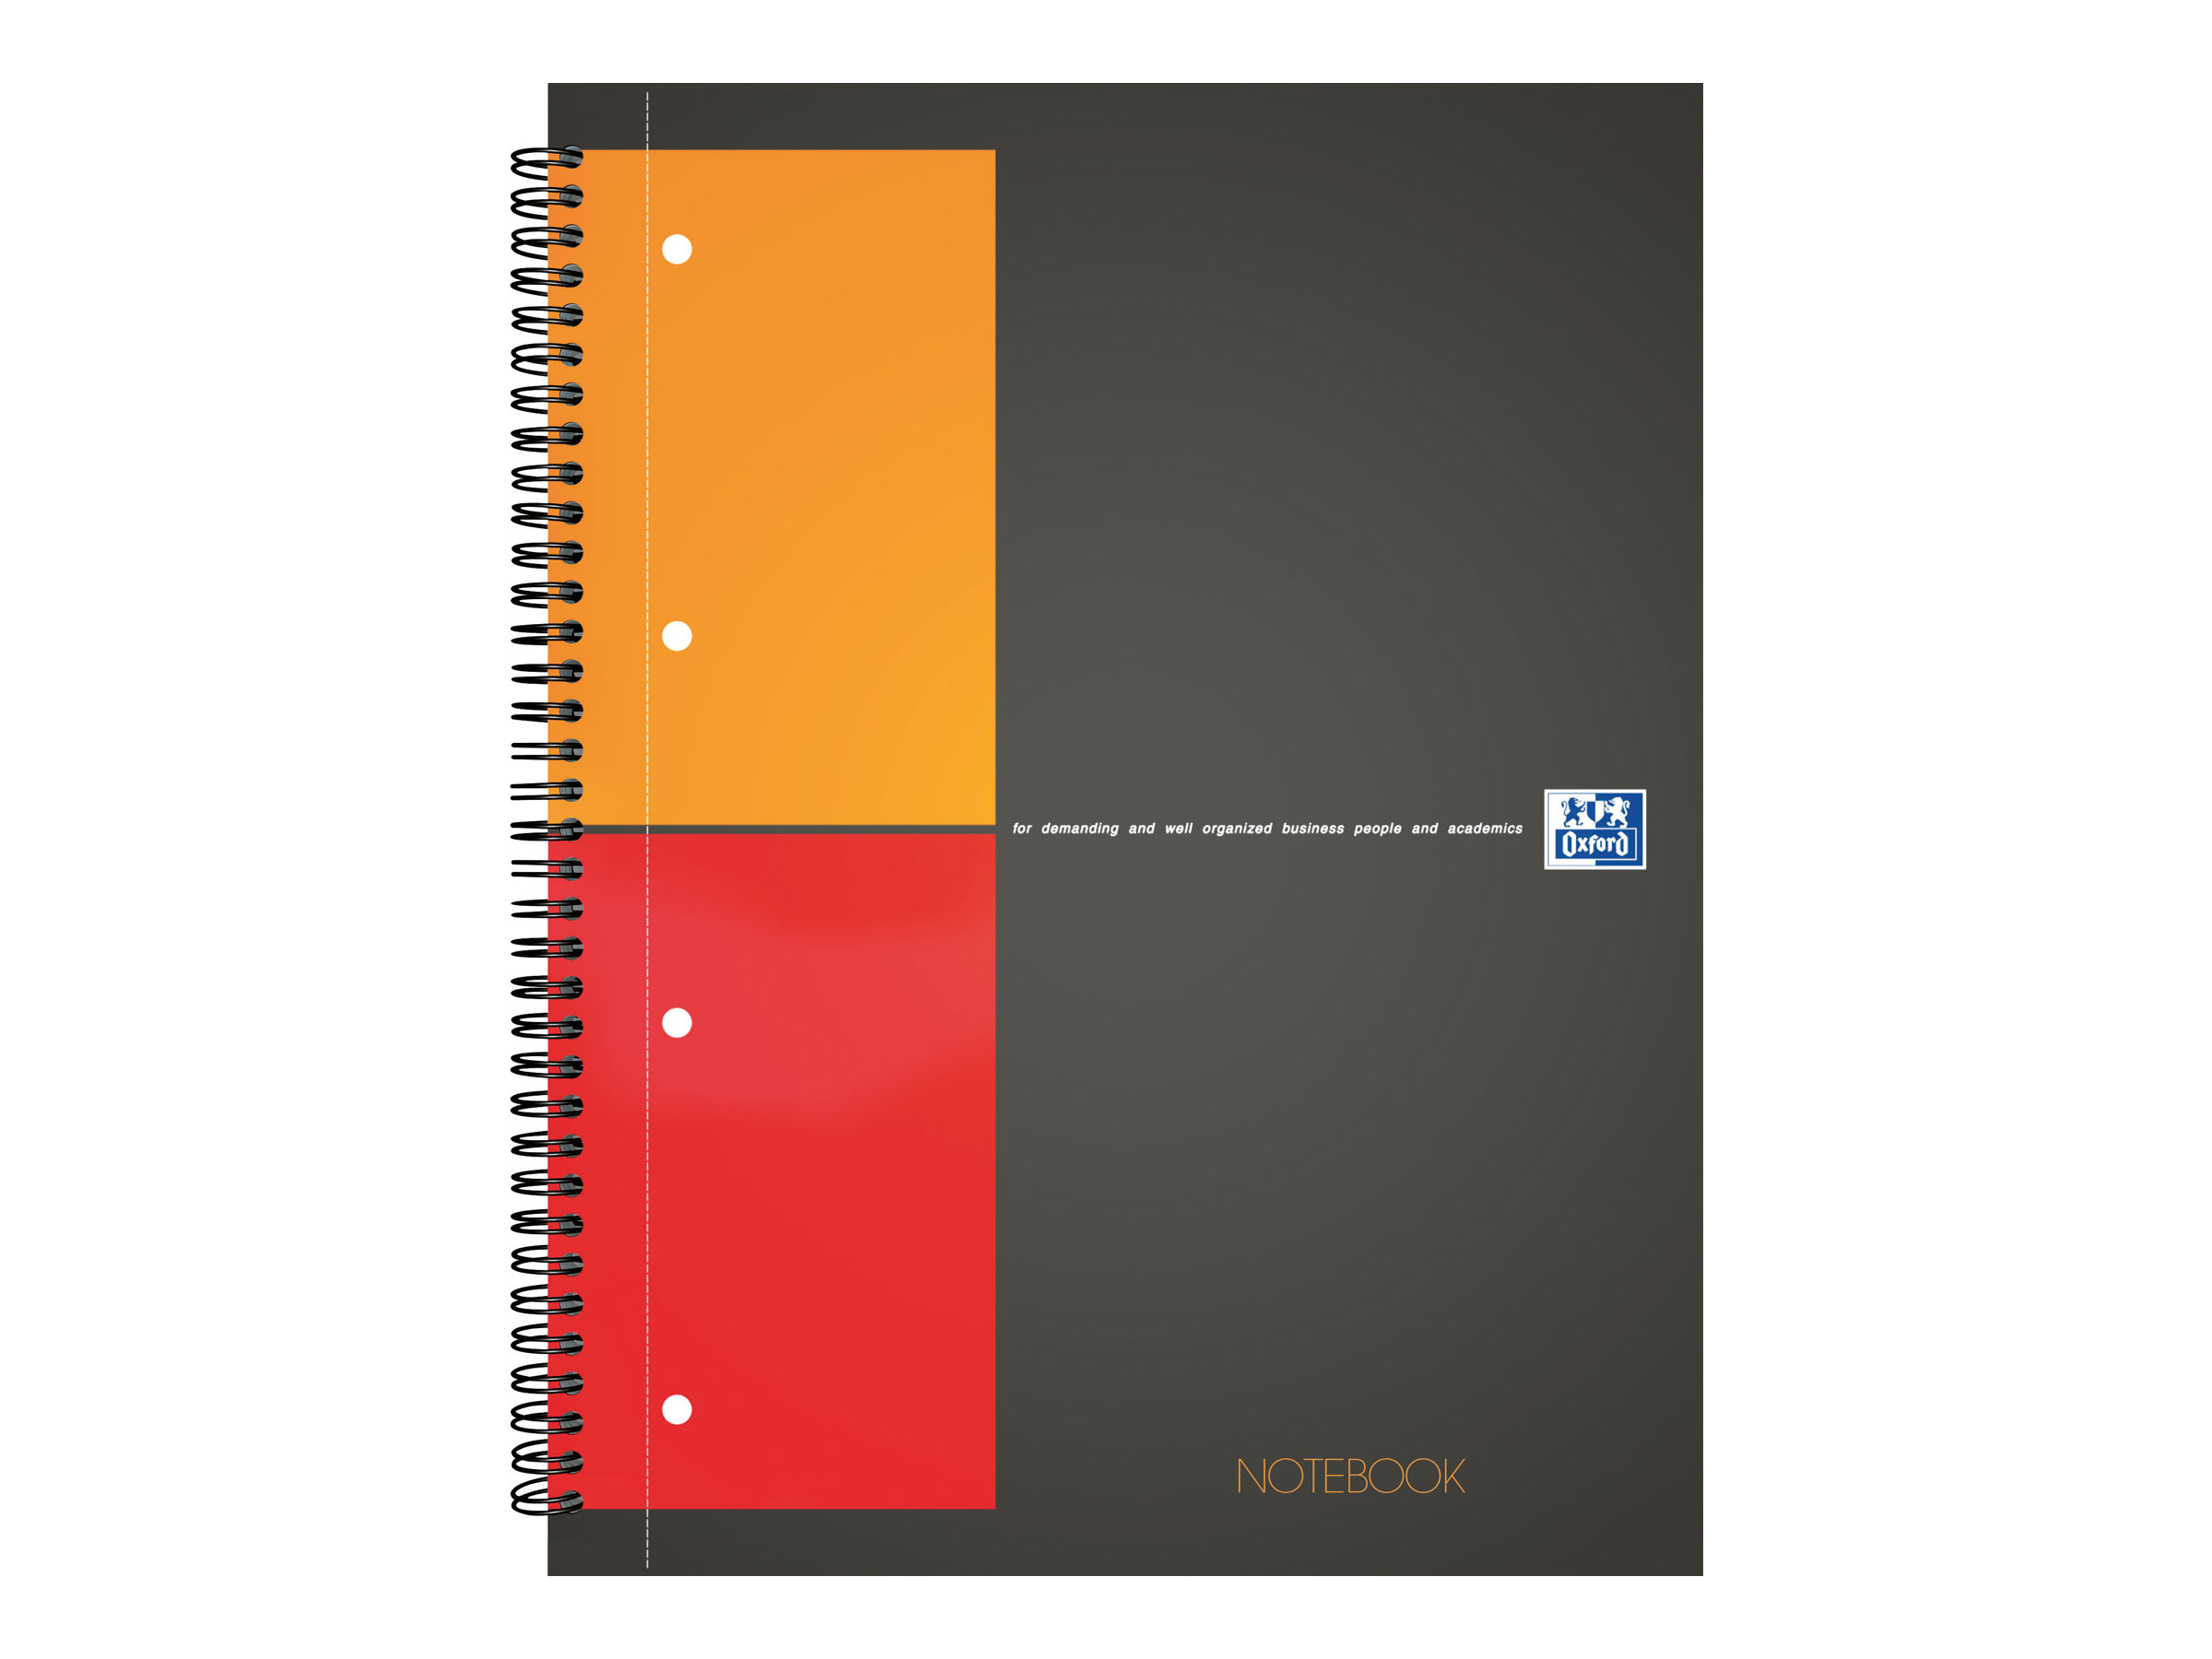 Oxford International A4+ - cahier